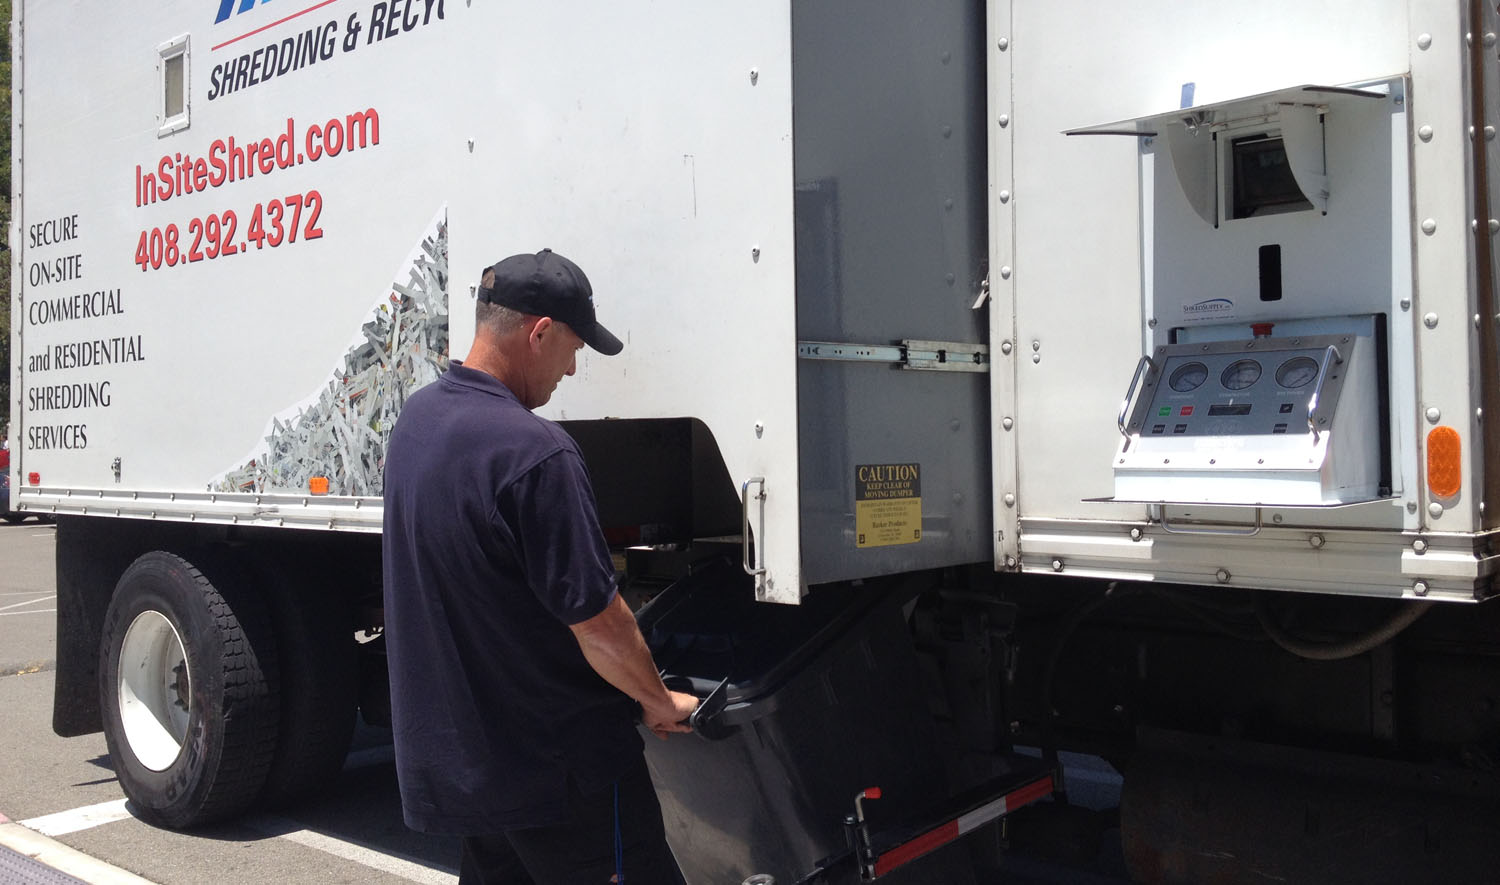 on site shredding service - loading paper bins onto truck